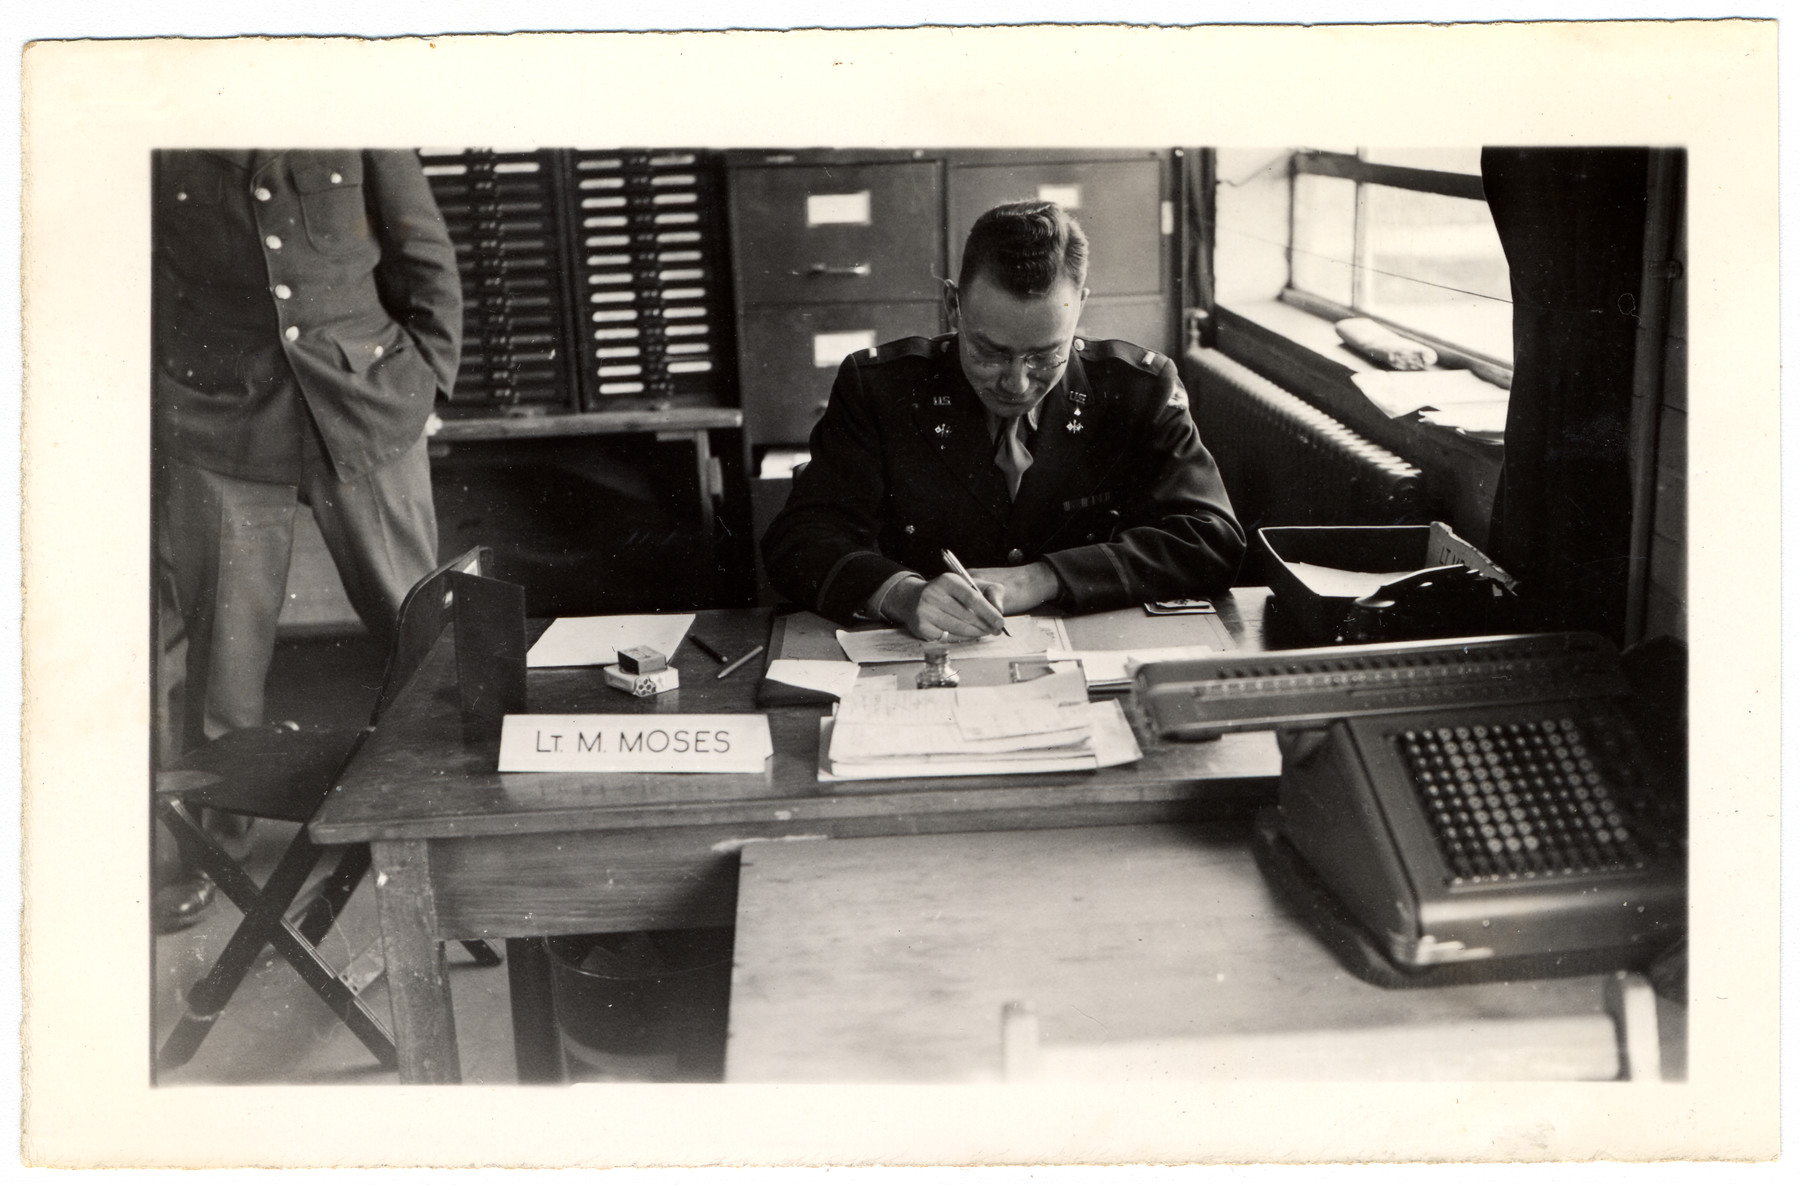 Lieutenant Myron Moses writes at his desk in the offices of the Signal Corps in Suippes, France.